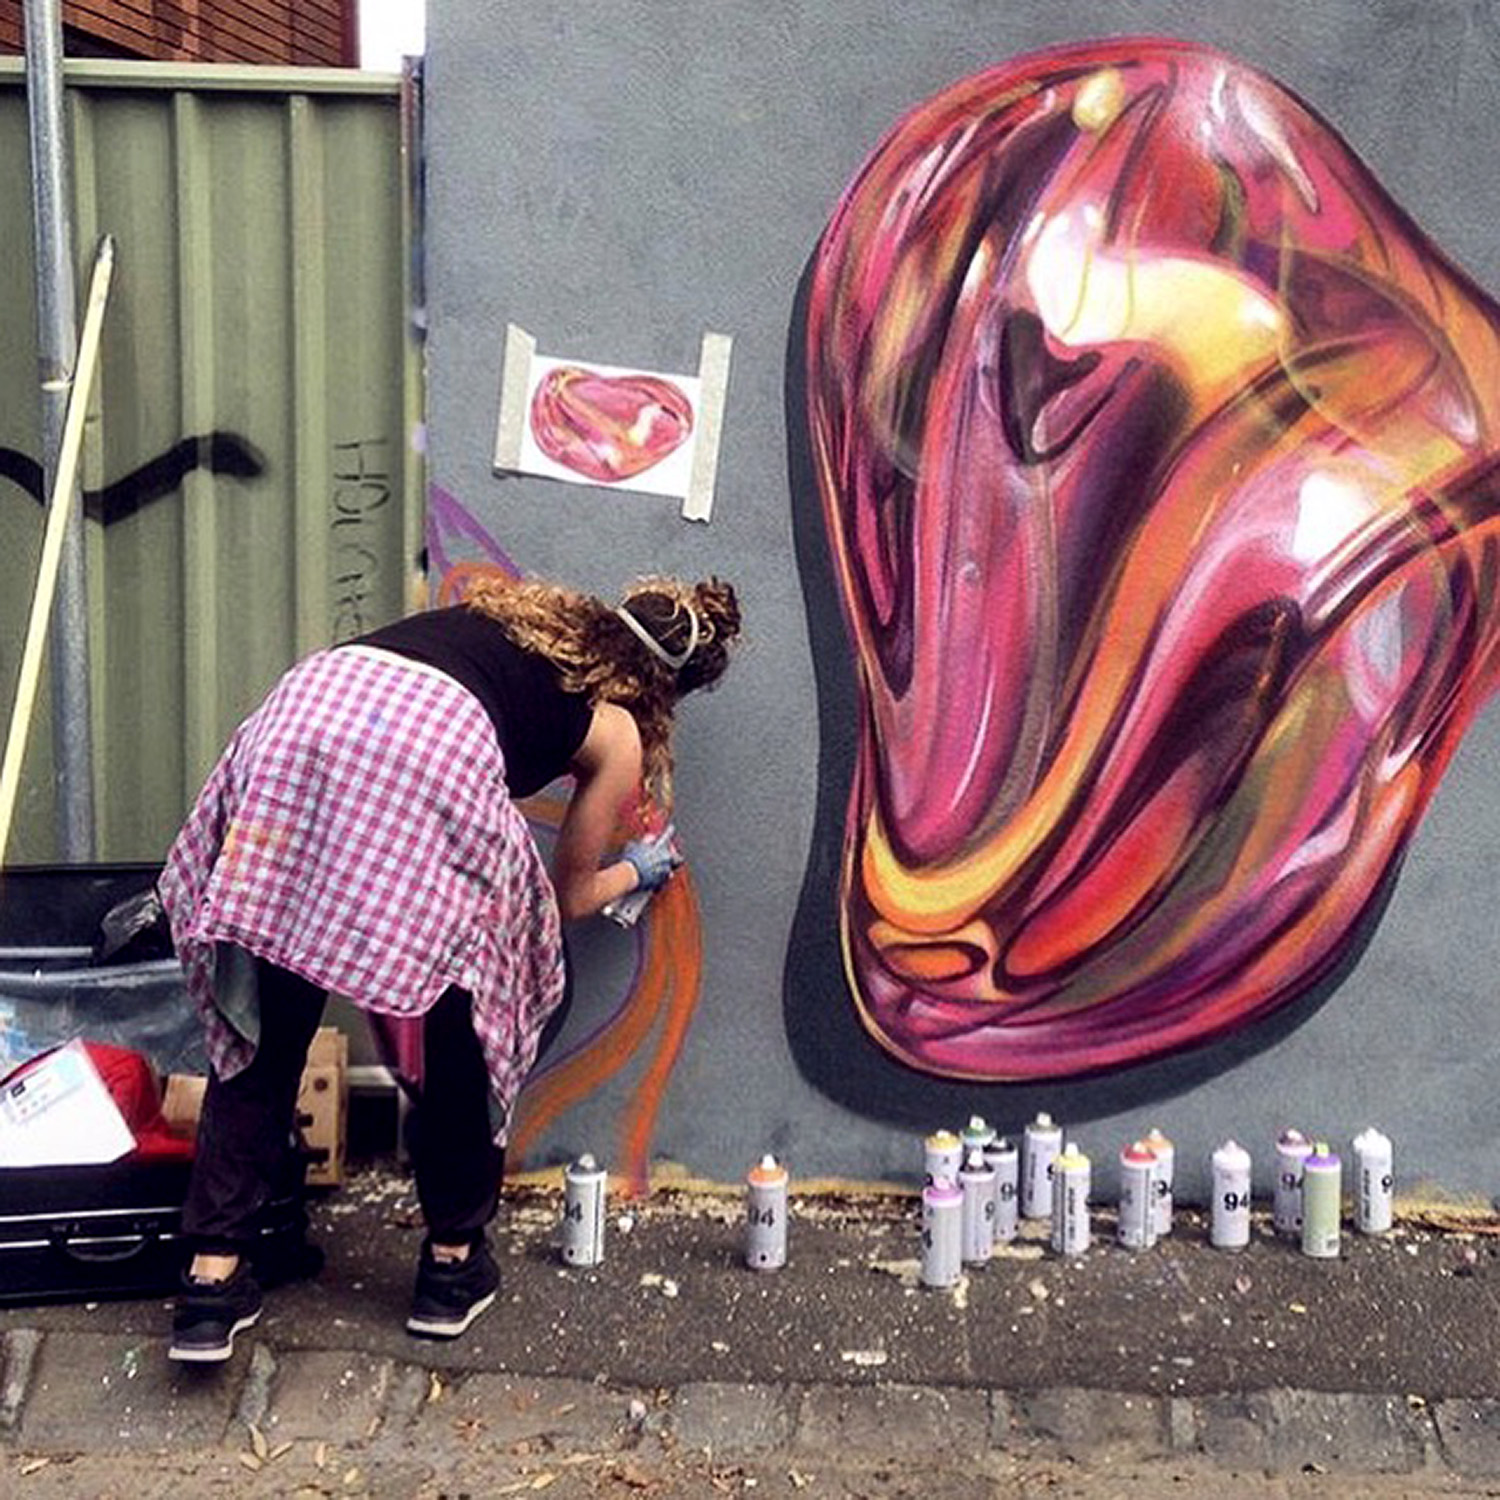 Spray painting abstract shapes and reflections